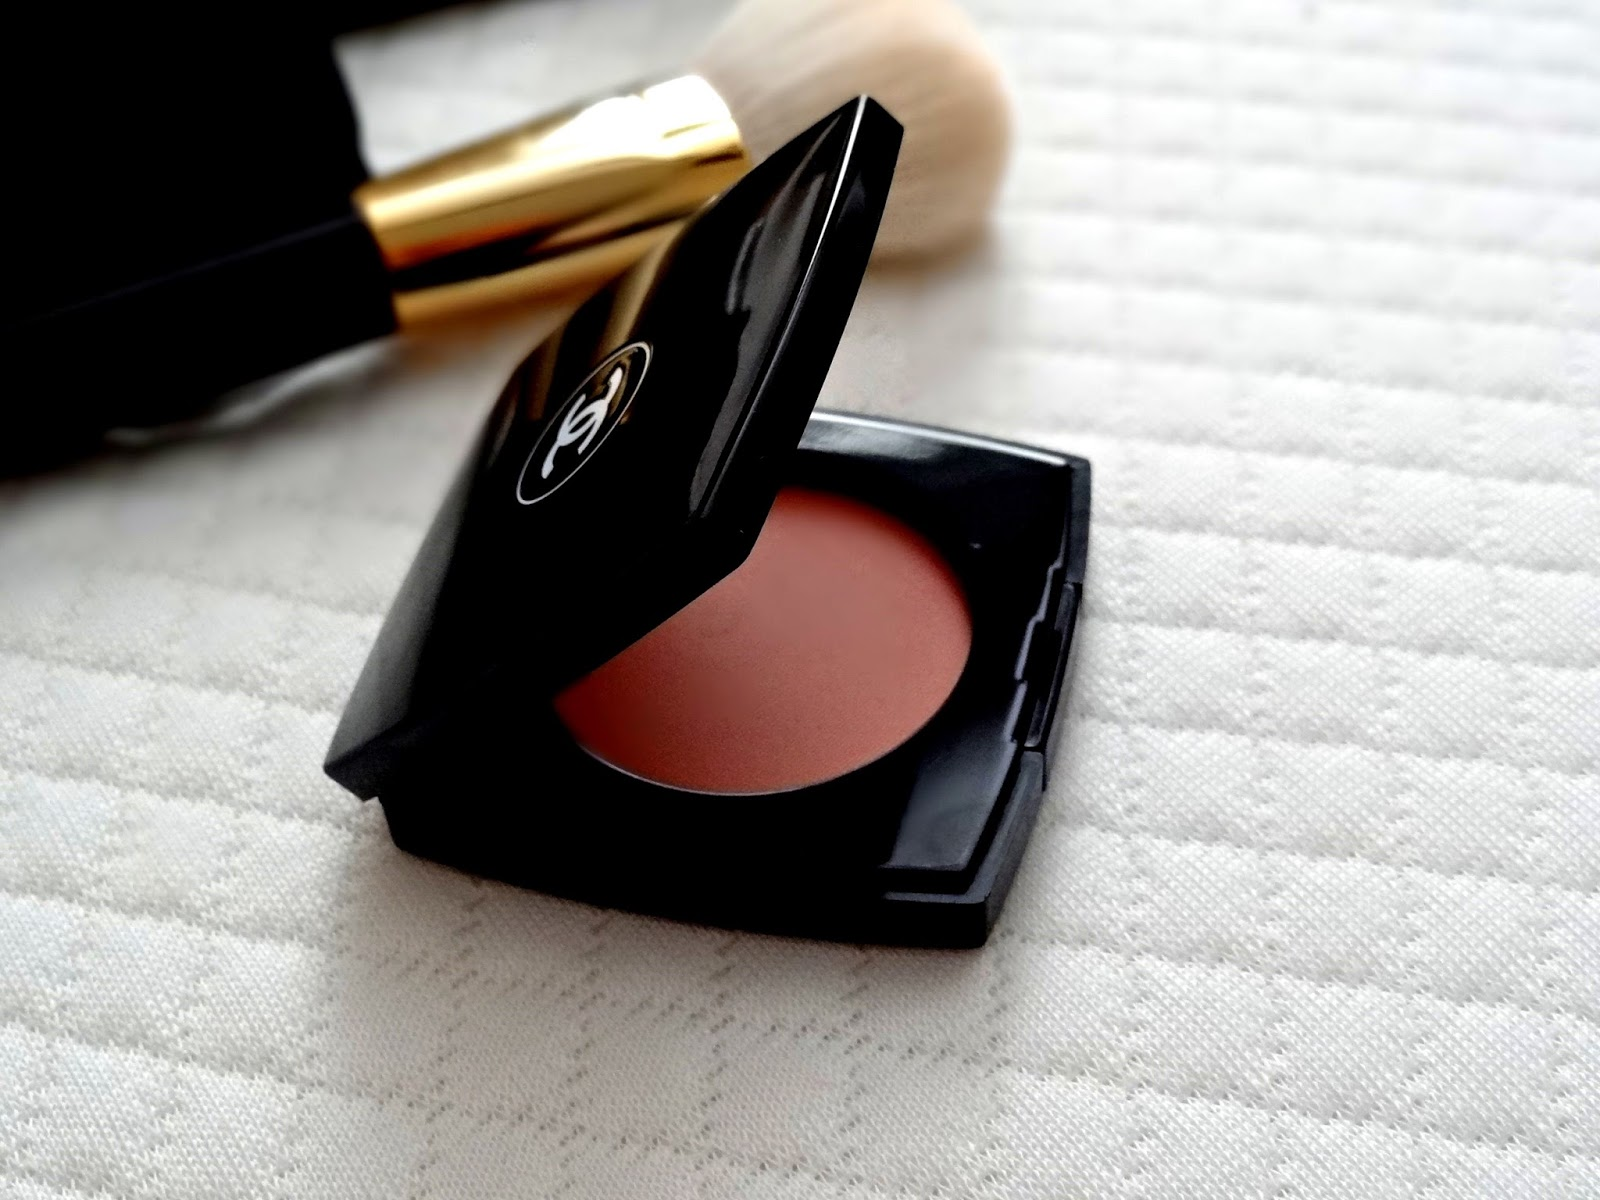 LE BLUSH CRÈME DE CHANEL in Destiny